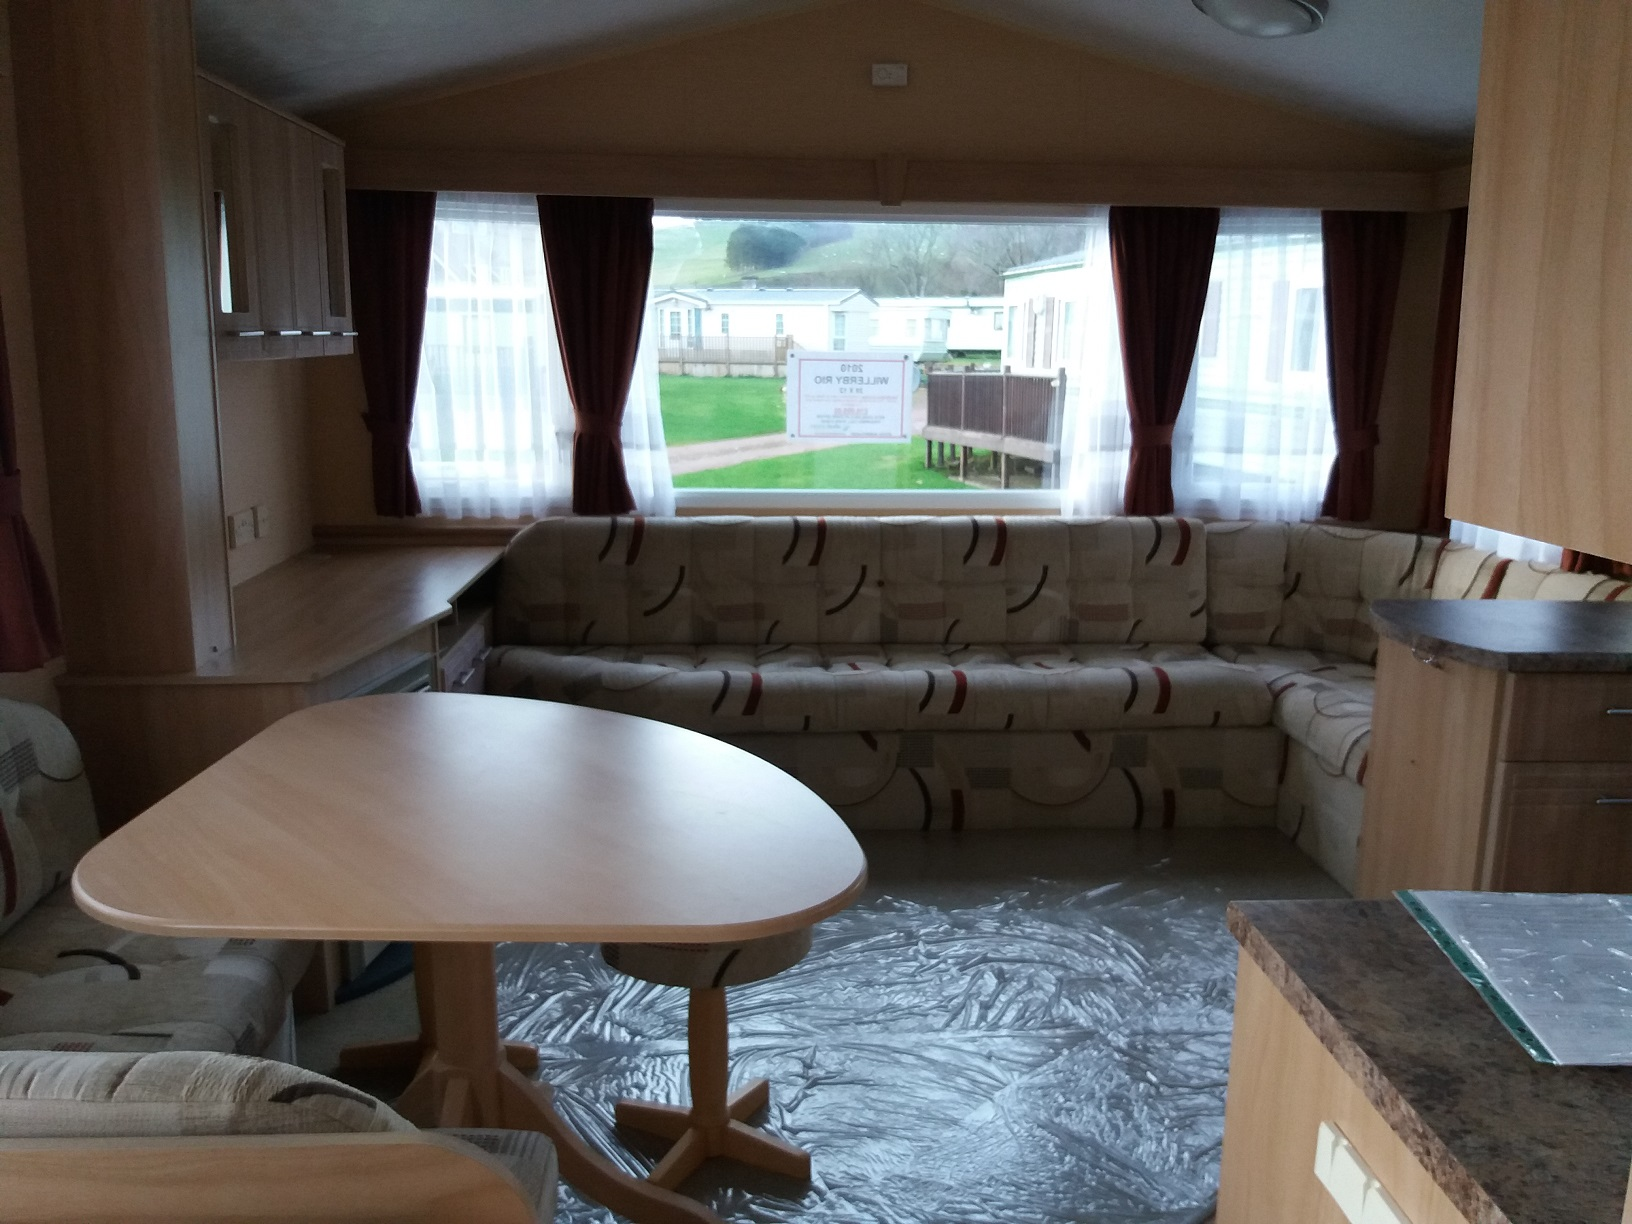 Willerby Rio: Static Caravans and Holiday Homes for Sale on Caravan Parks, Rothbury, Northumberland Large Image 1